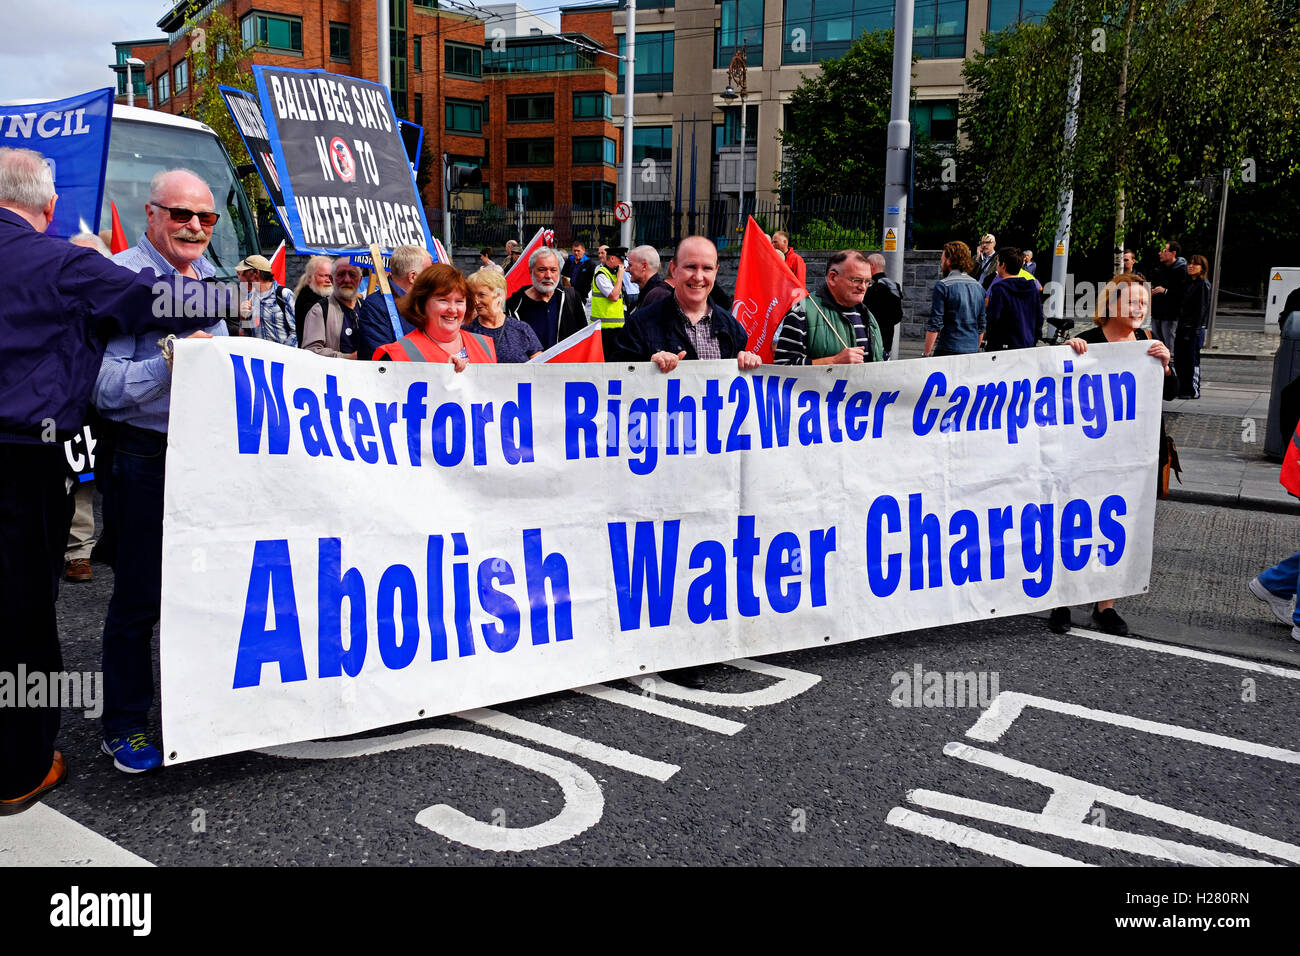 Water Charges protestors marching through Dublin Ireland September 2016 - Stock Image